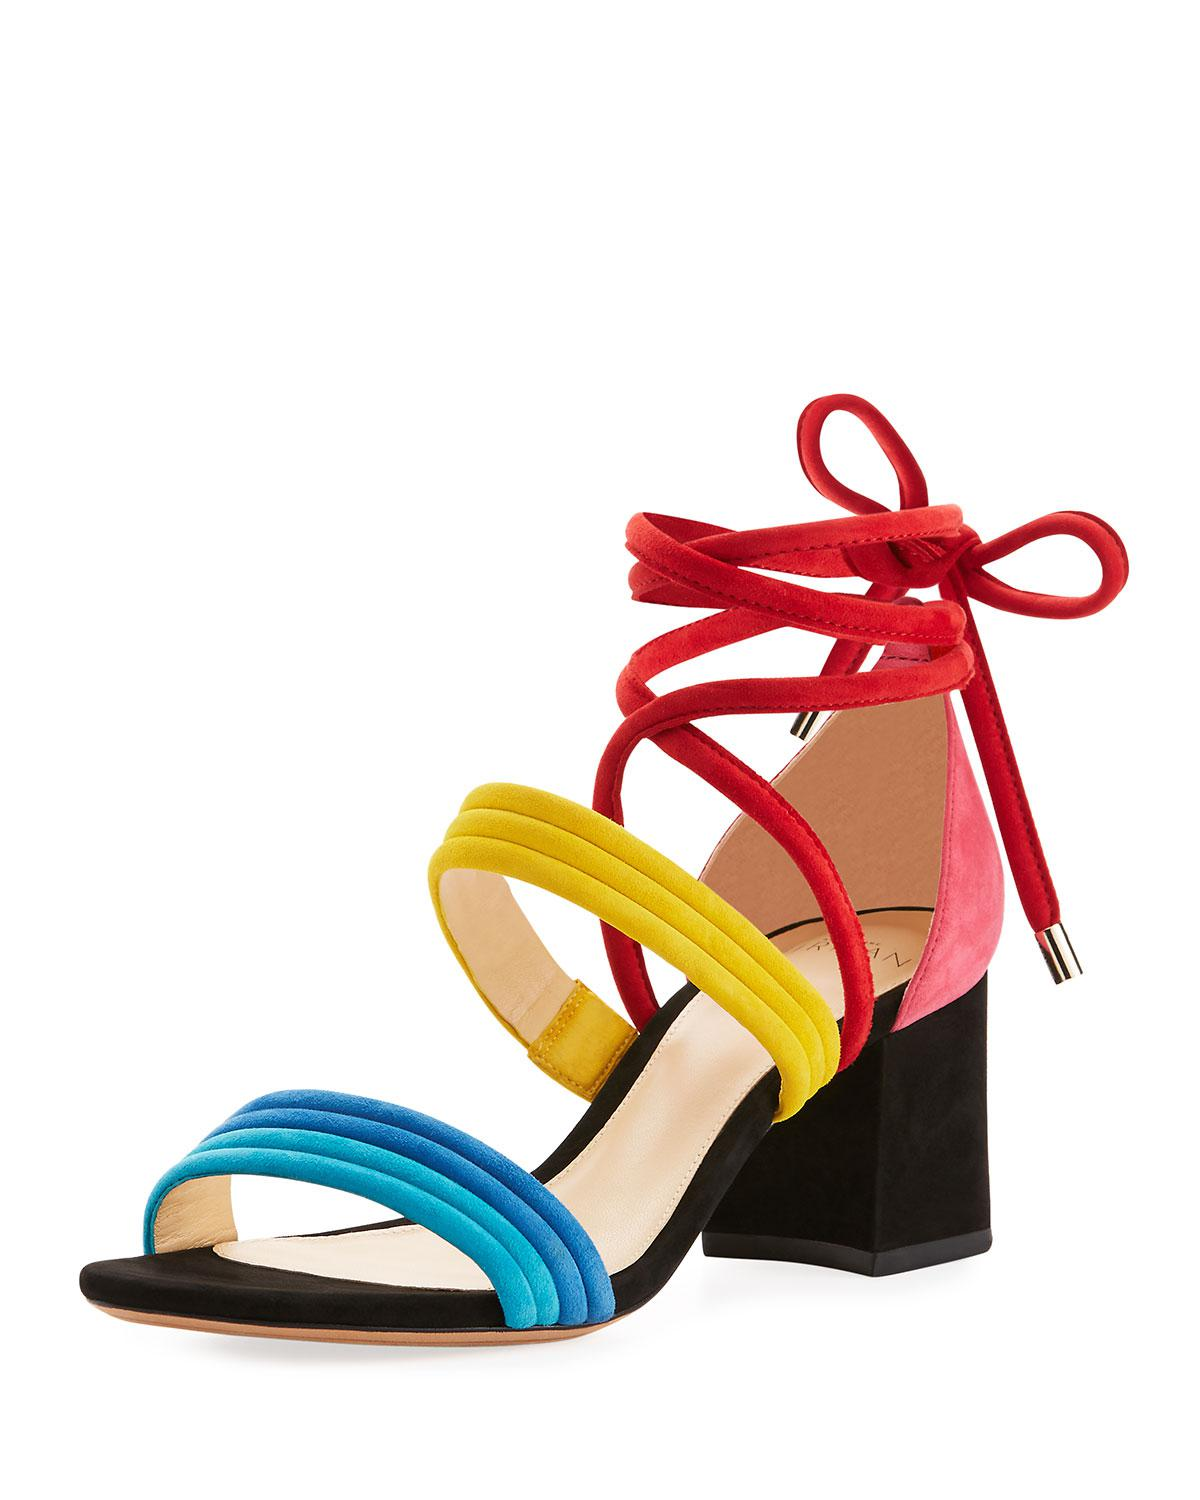 best sale online buy online outlet Alexandre Birman Aurora Colorblock Sandals outlet marketable with mastercard cheap price free shipping 2015 new RDEdvldz